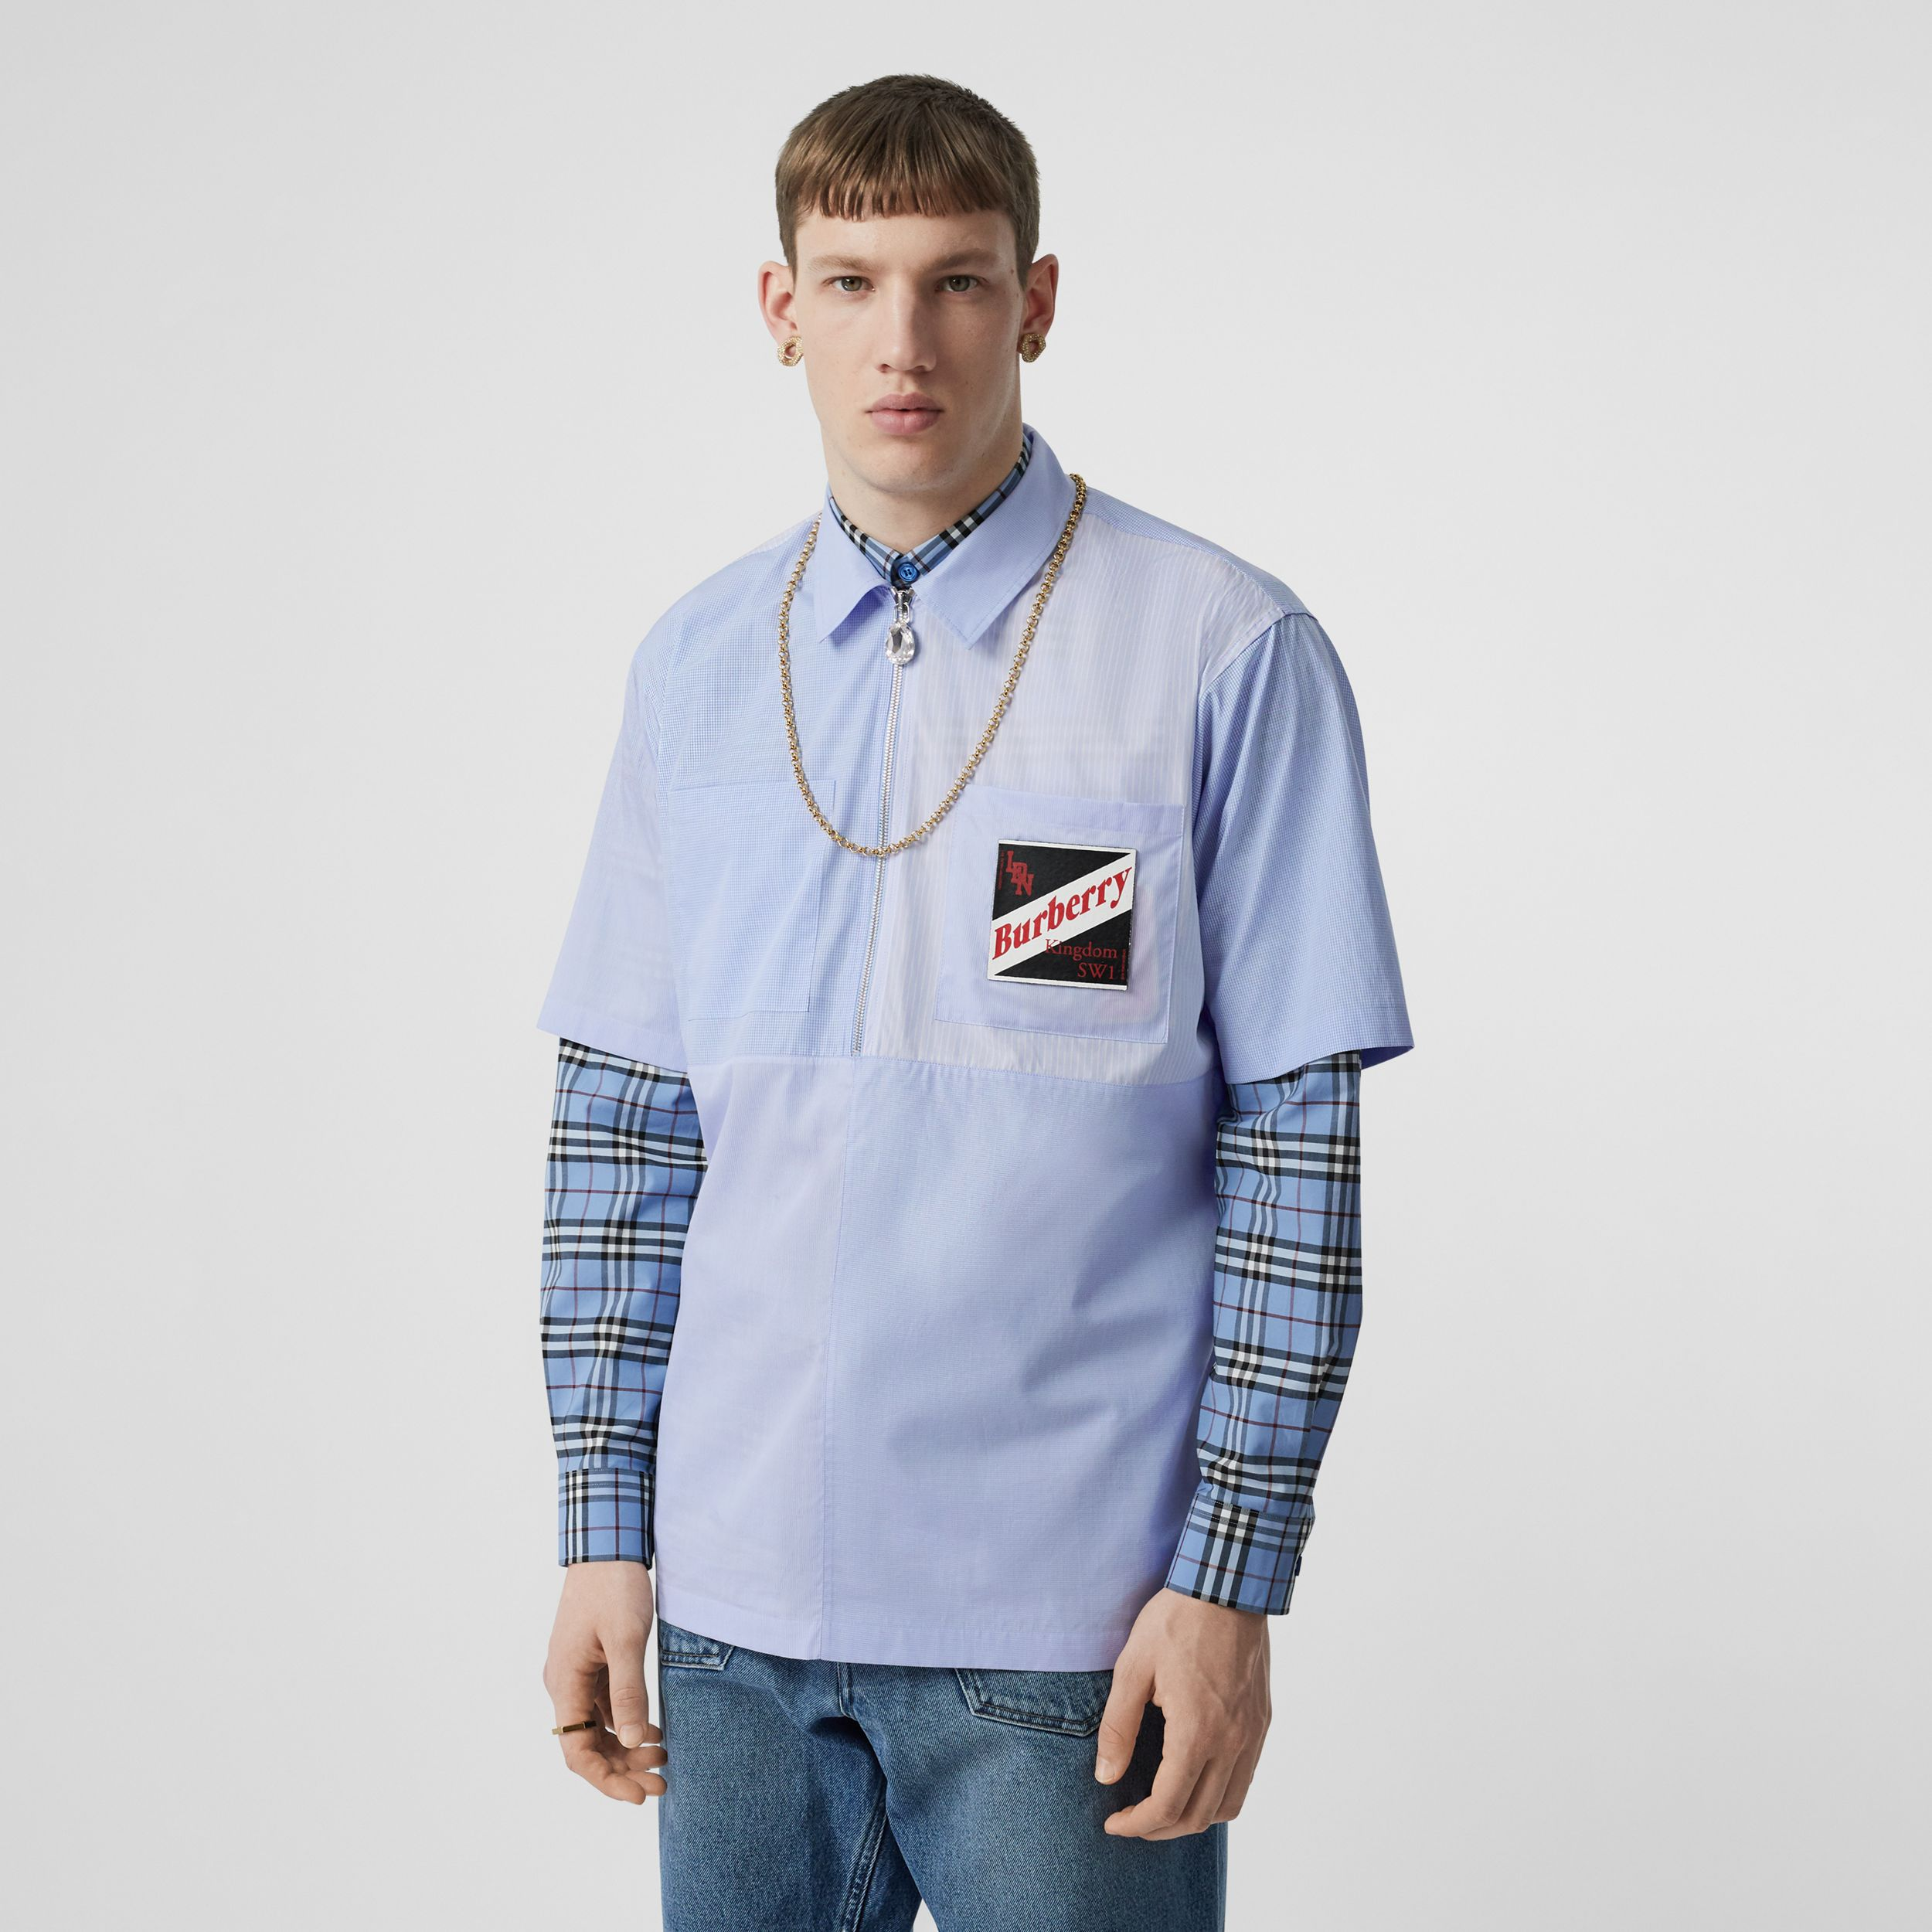 Short-sleeve Logo Graphic Patchwork Cotton Shirt in Pale Blue - Men | Burberry - 1